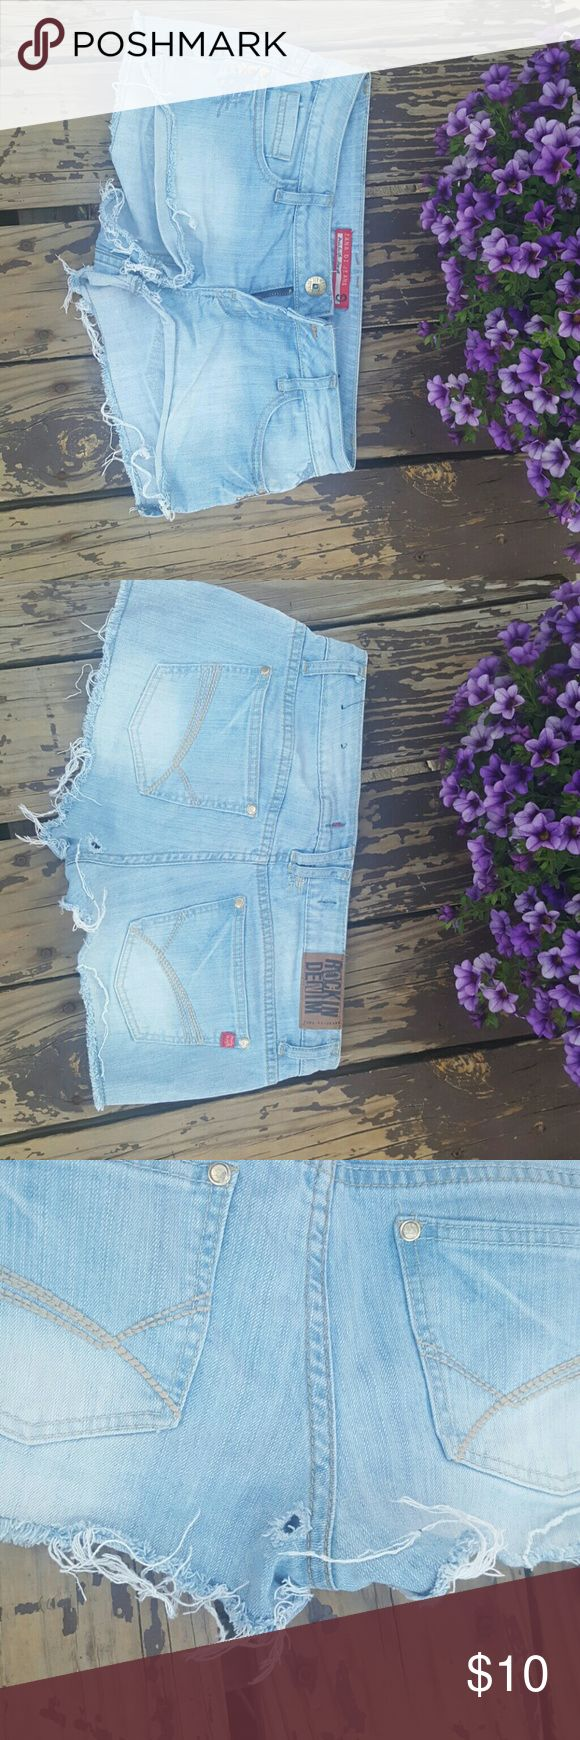 Cut off jean shorts Size 9 cut off supee short shorts. Has hole by but but it came like that. Zana di jeans Zana Di Shorts Jean Shorts